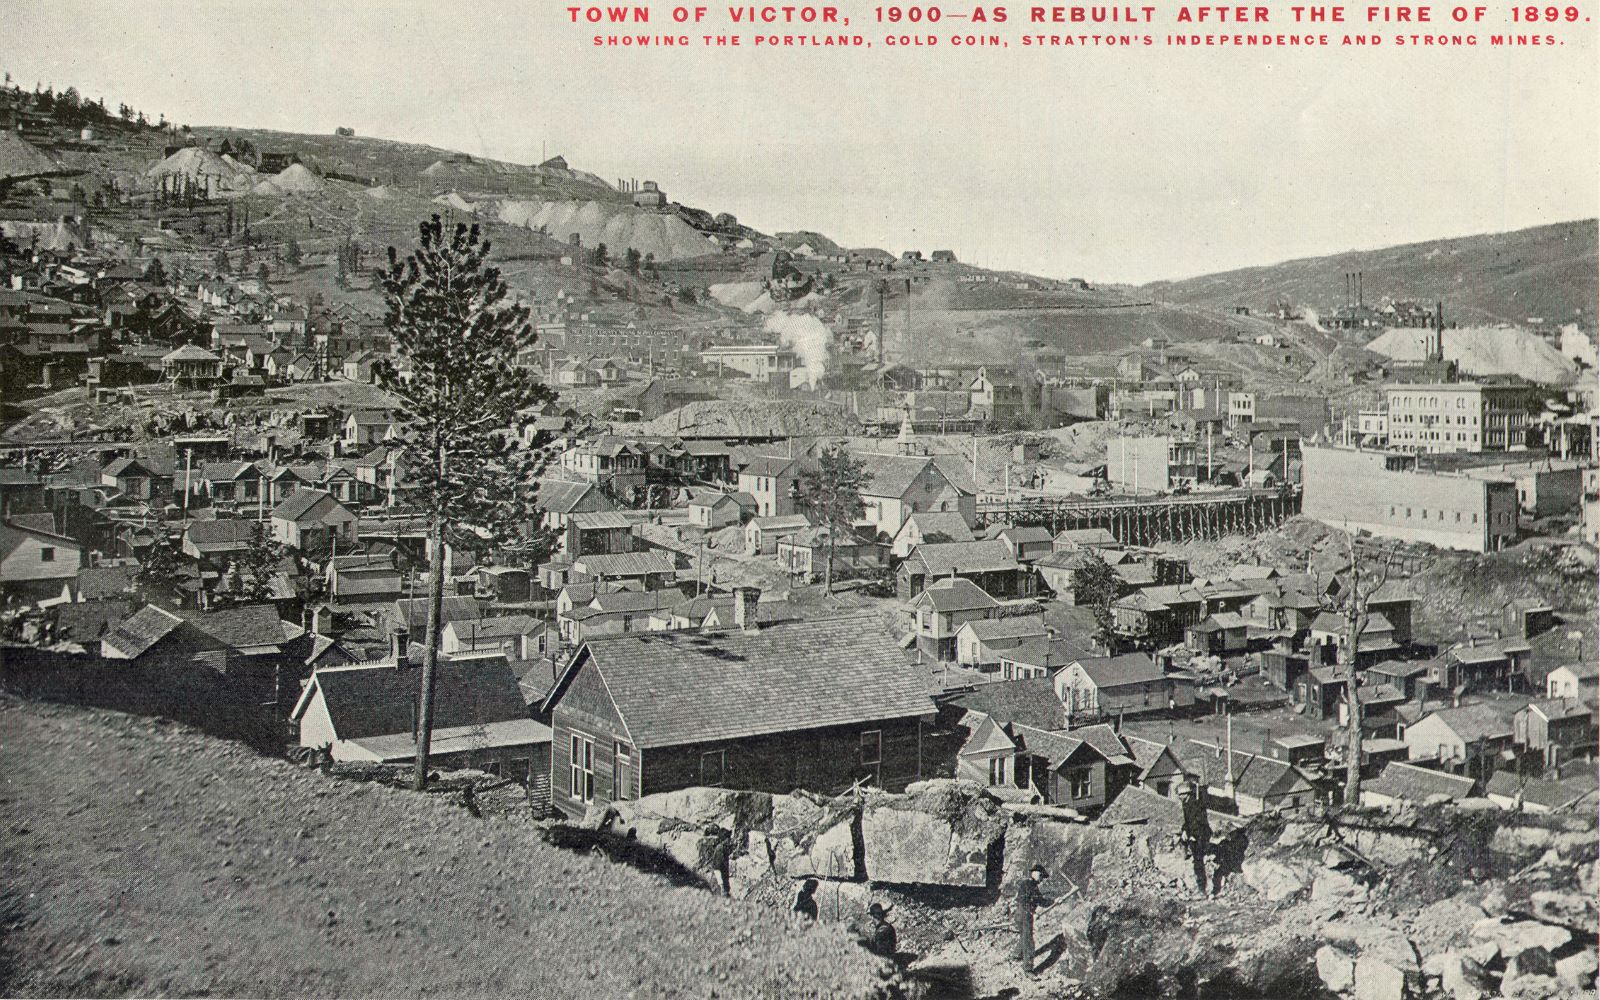 This view is taken near the point on the southwest of Victor where the Low Line entered town and where it had its upper curve before going downhill along 7th street and then entering through another curve into Victor Avenue. The first, upper, curve should just be behind the photographer I think. There are a lot of small houses visible, the Gold Coin ore house and mine is visible near middle of image, off to the right half of this view. It's a little hard to make out details, but the full extent of the most common known Gold Coin with its bricks is not there yet. Battle Mountain and its mines, like the Portland Mine is visible behind the town, while the Strong Mine and the Independence Mine mark the right edge of the picture.